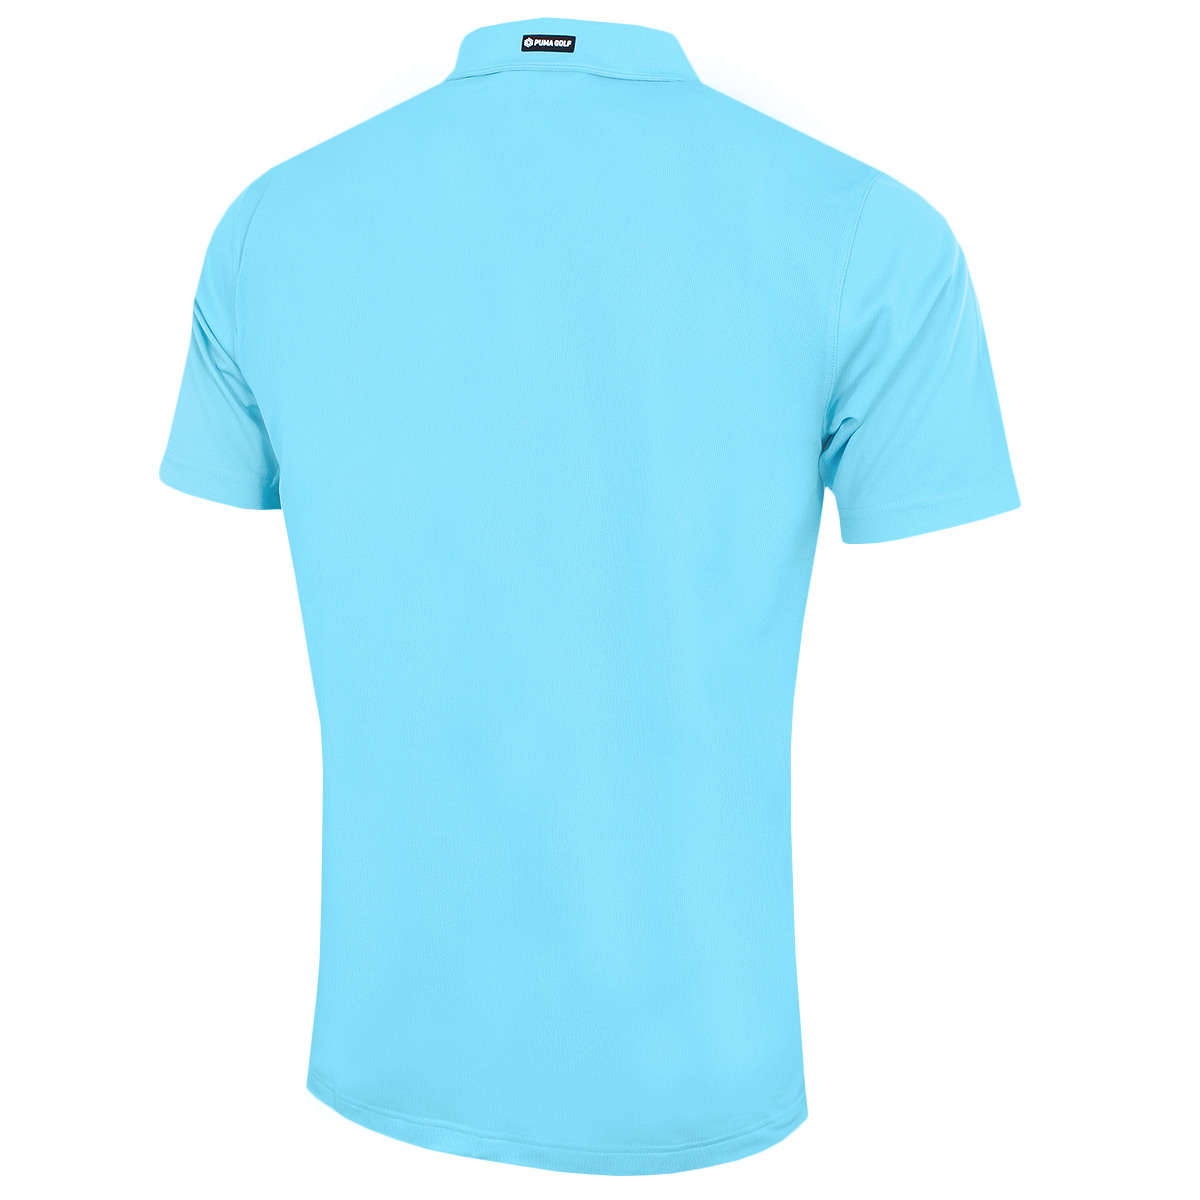 Puma-Golf-Mens-Essential-Pounce-Polo-Shirt-DryCell-Lightweight-Tech-43-OFF-RRP thumbnail 12